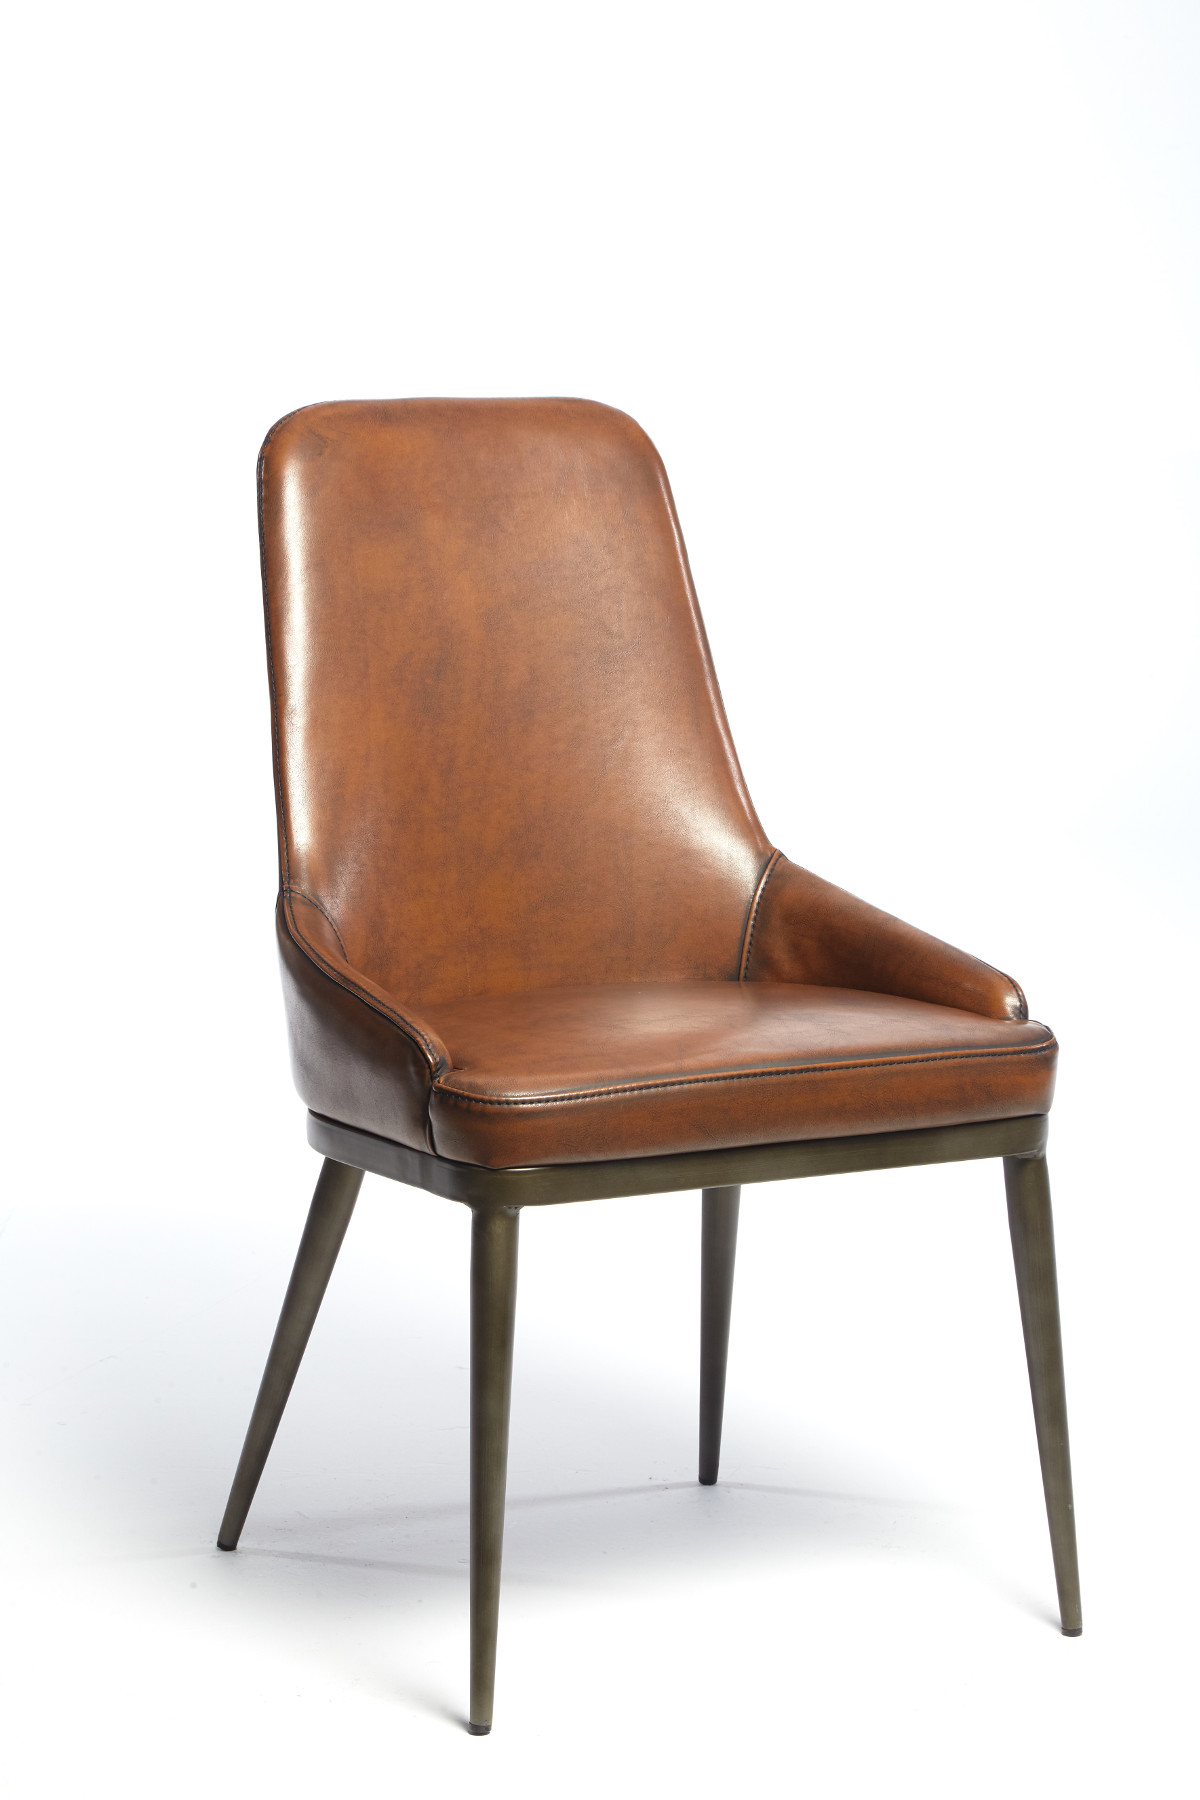 Retro Contour Chair